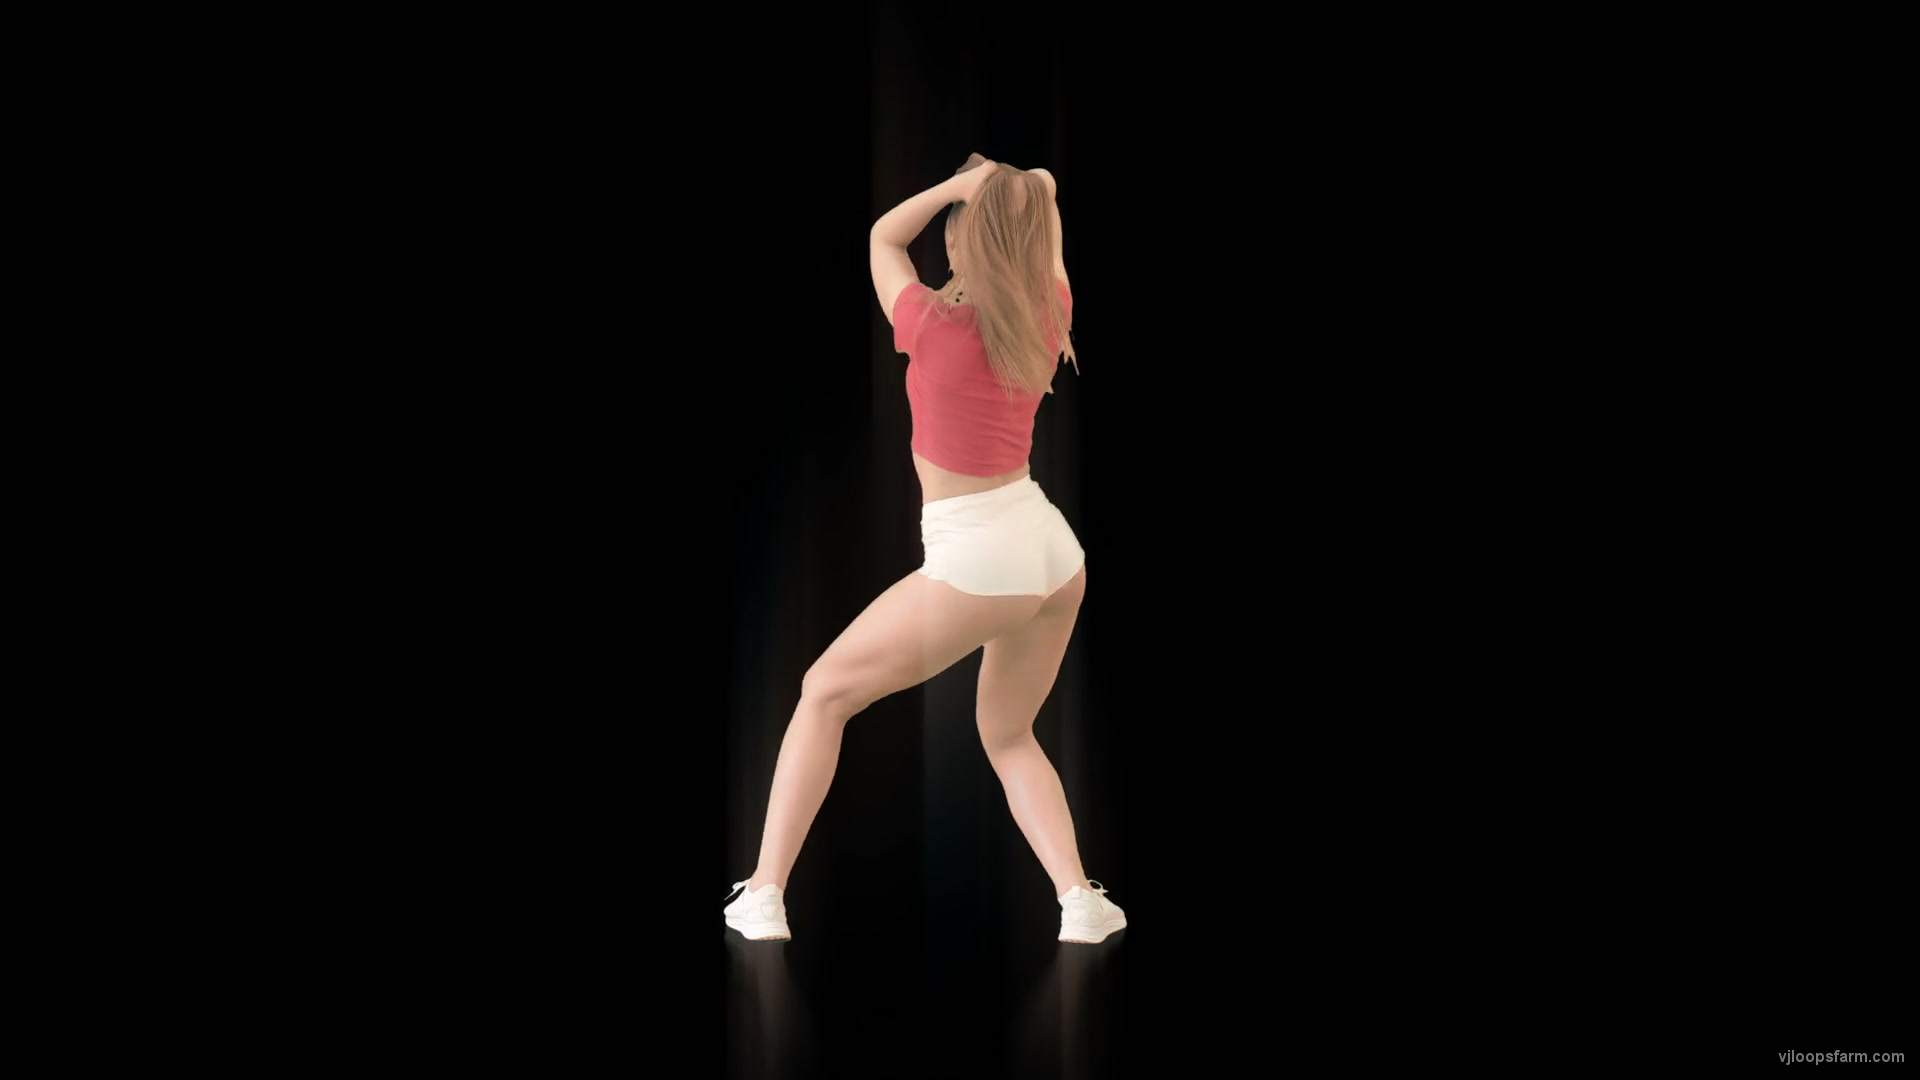 vj video background Single-4K-twerking-girl-waving-hips-isolated-on-black-background-Video-Art-Vj-Loop-1920_003